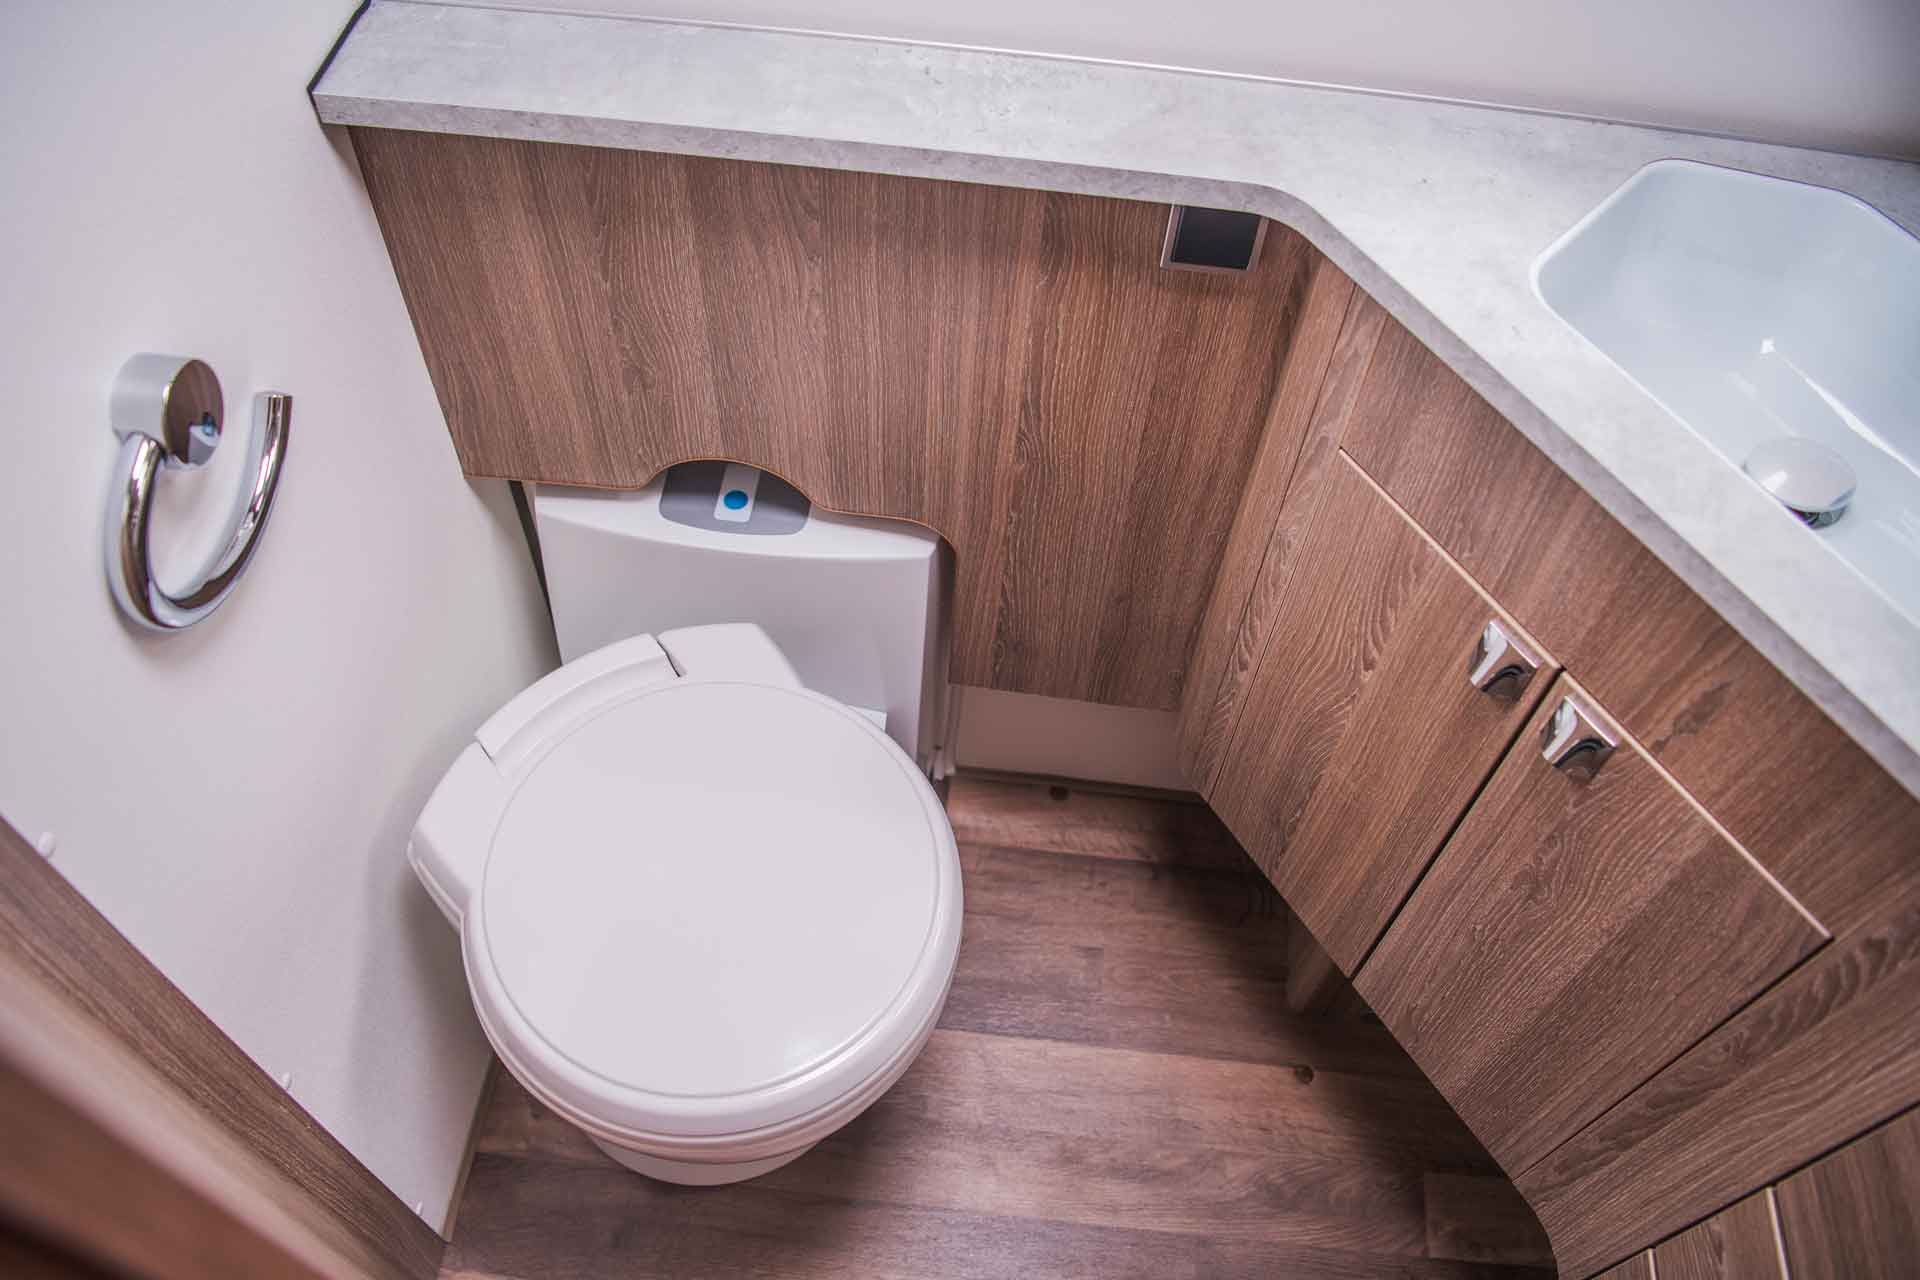 Best Campervan Toilets